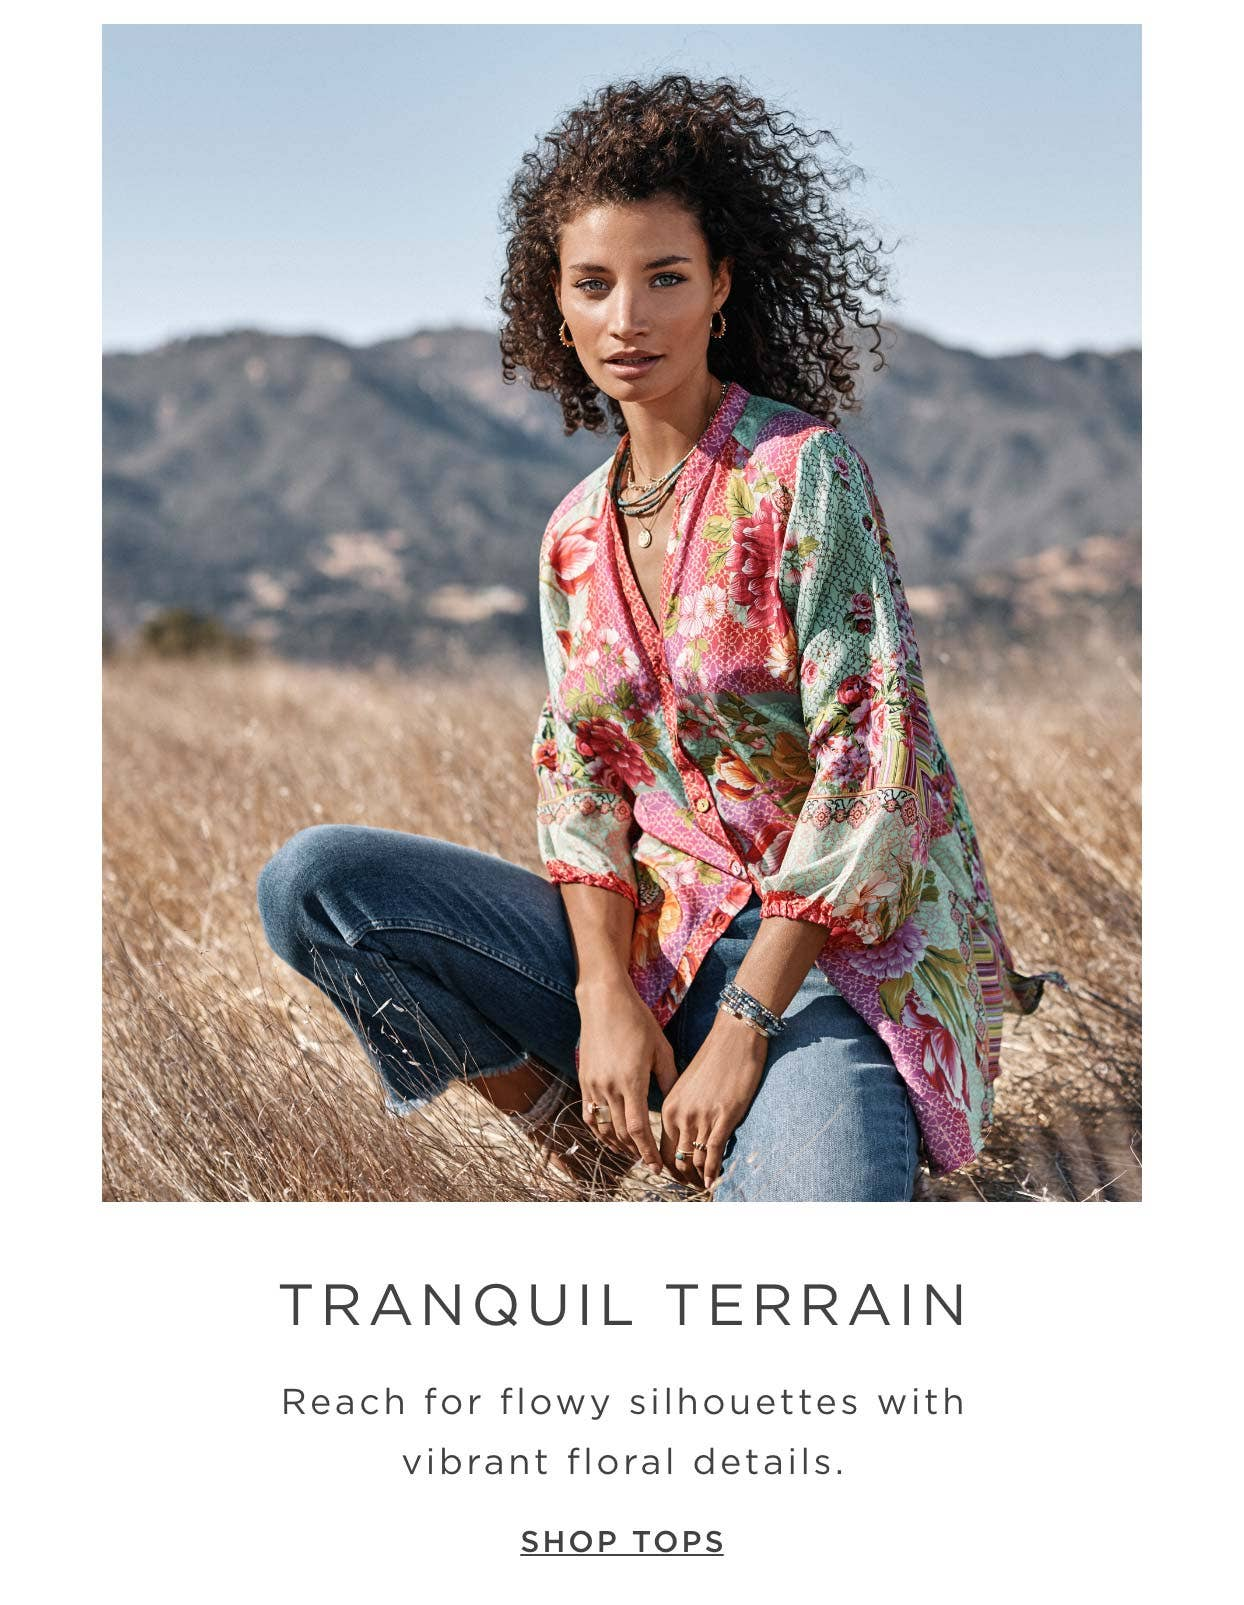 Tranquil Terrain - Reach for flowy silhouettes with vibrant floral details - Shop Tops